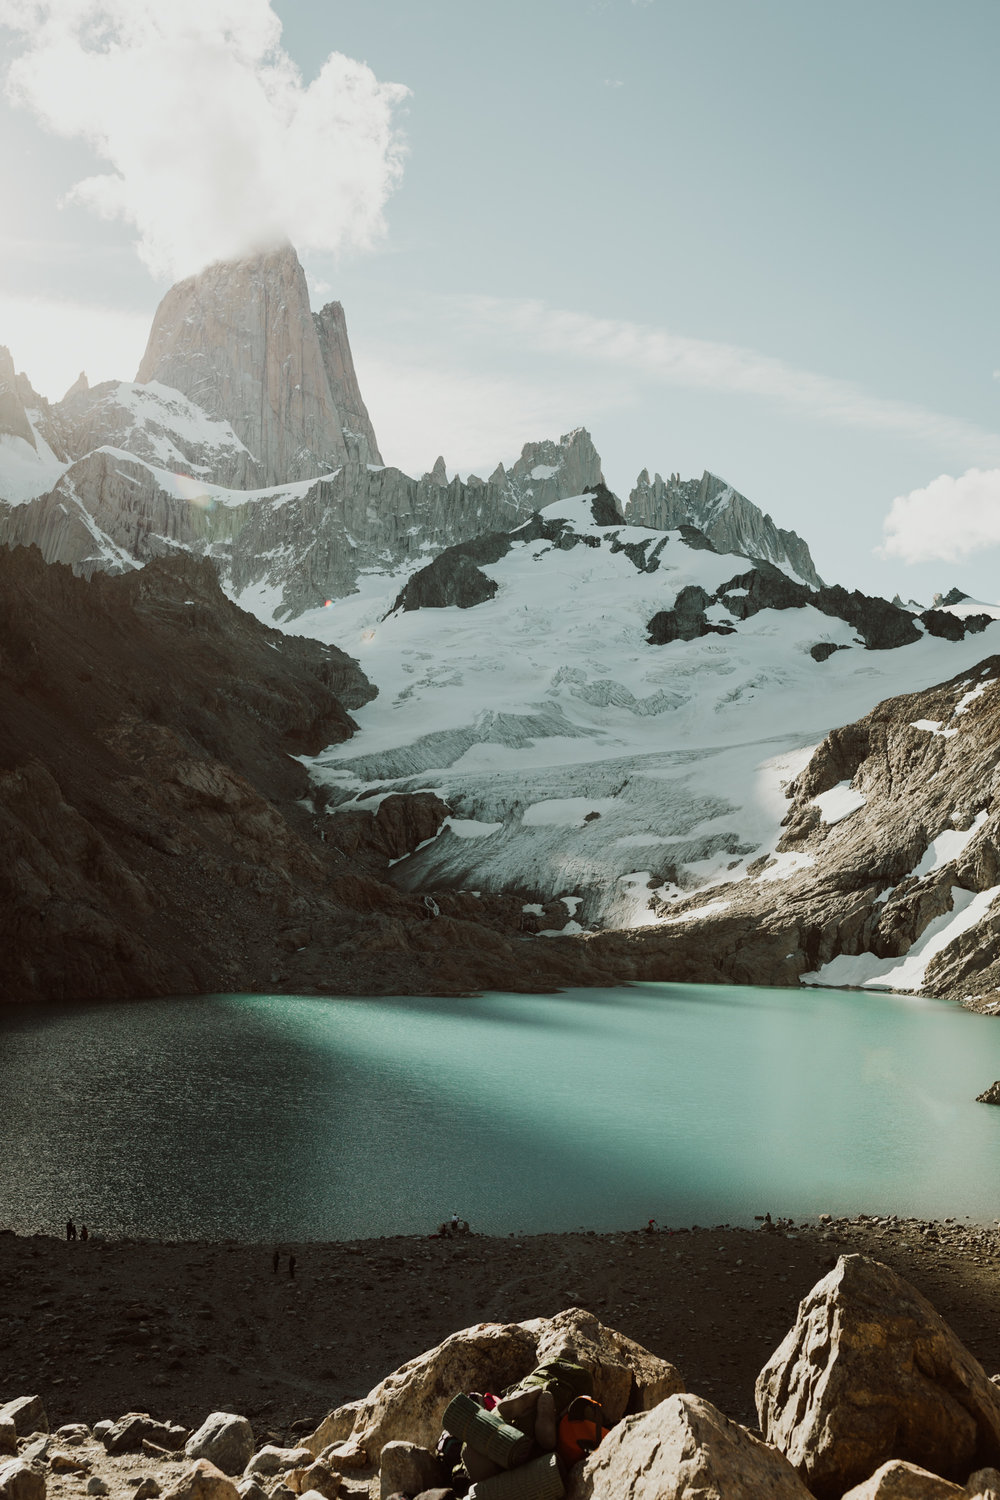 patagonia-adventure-photographer-105.jpg